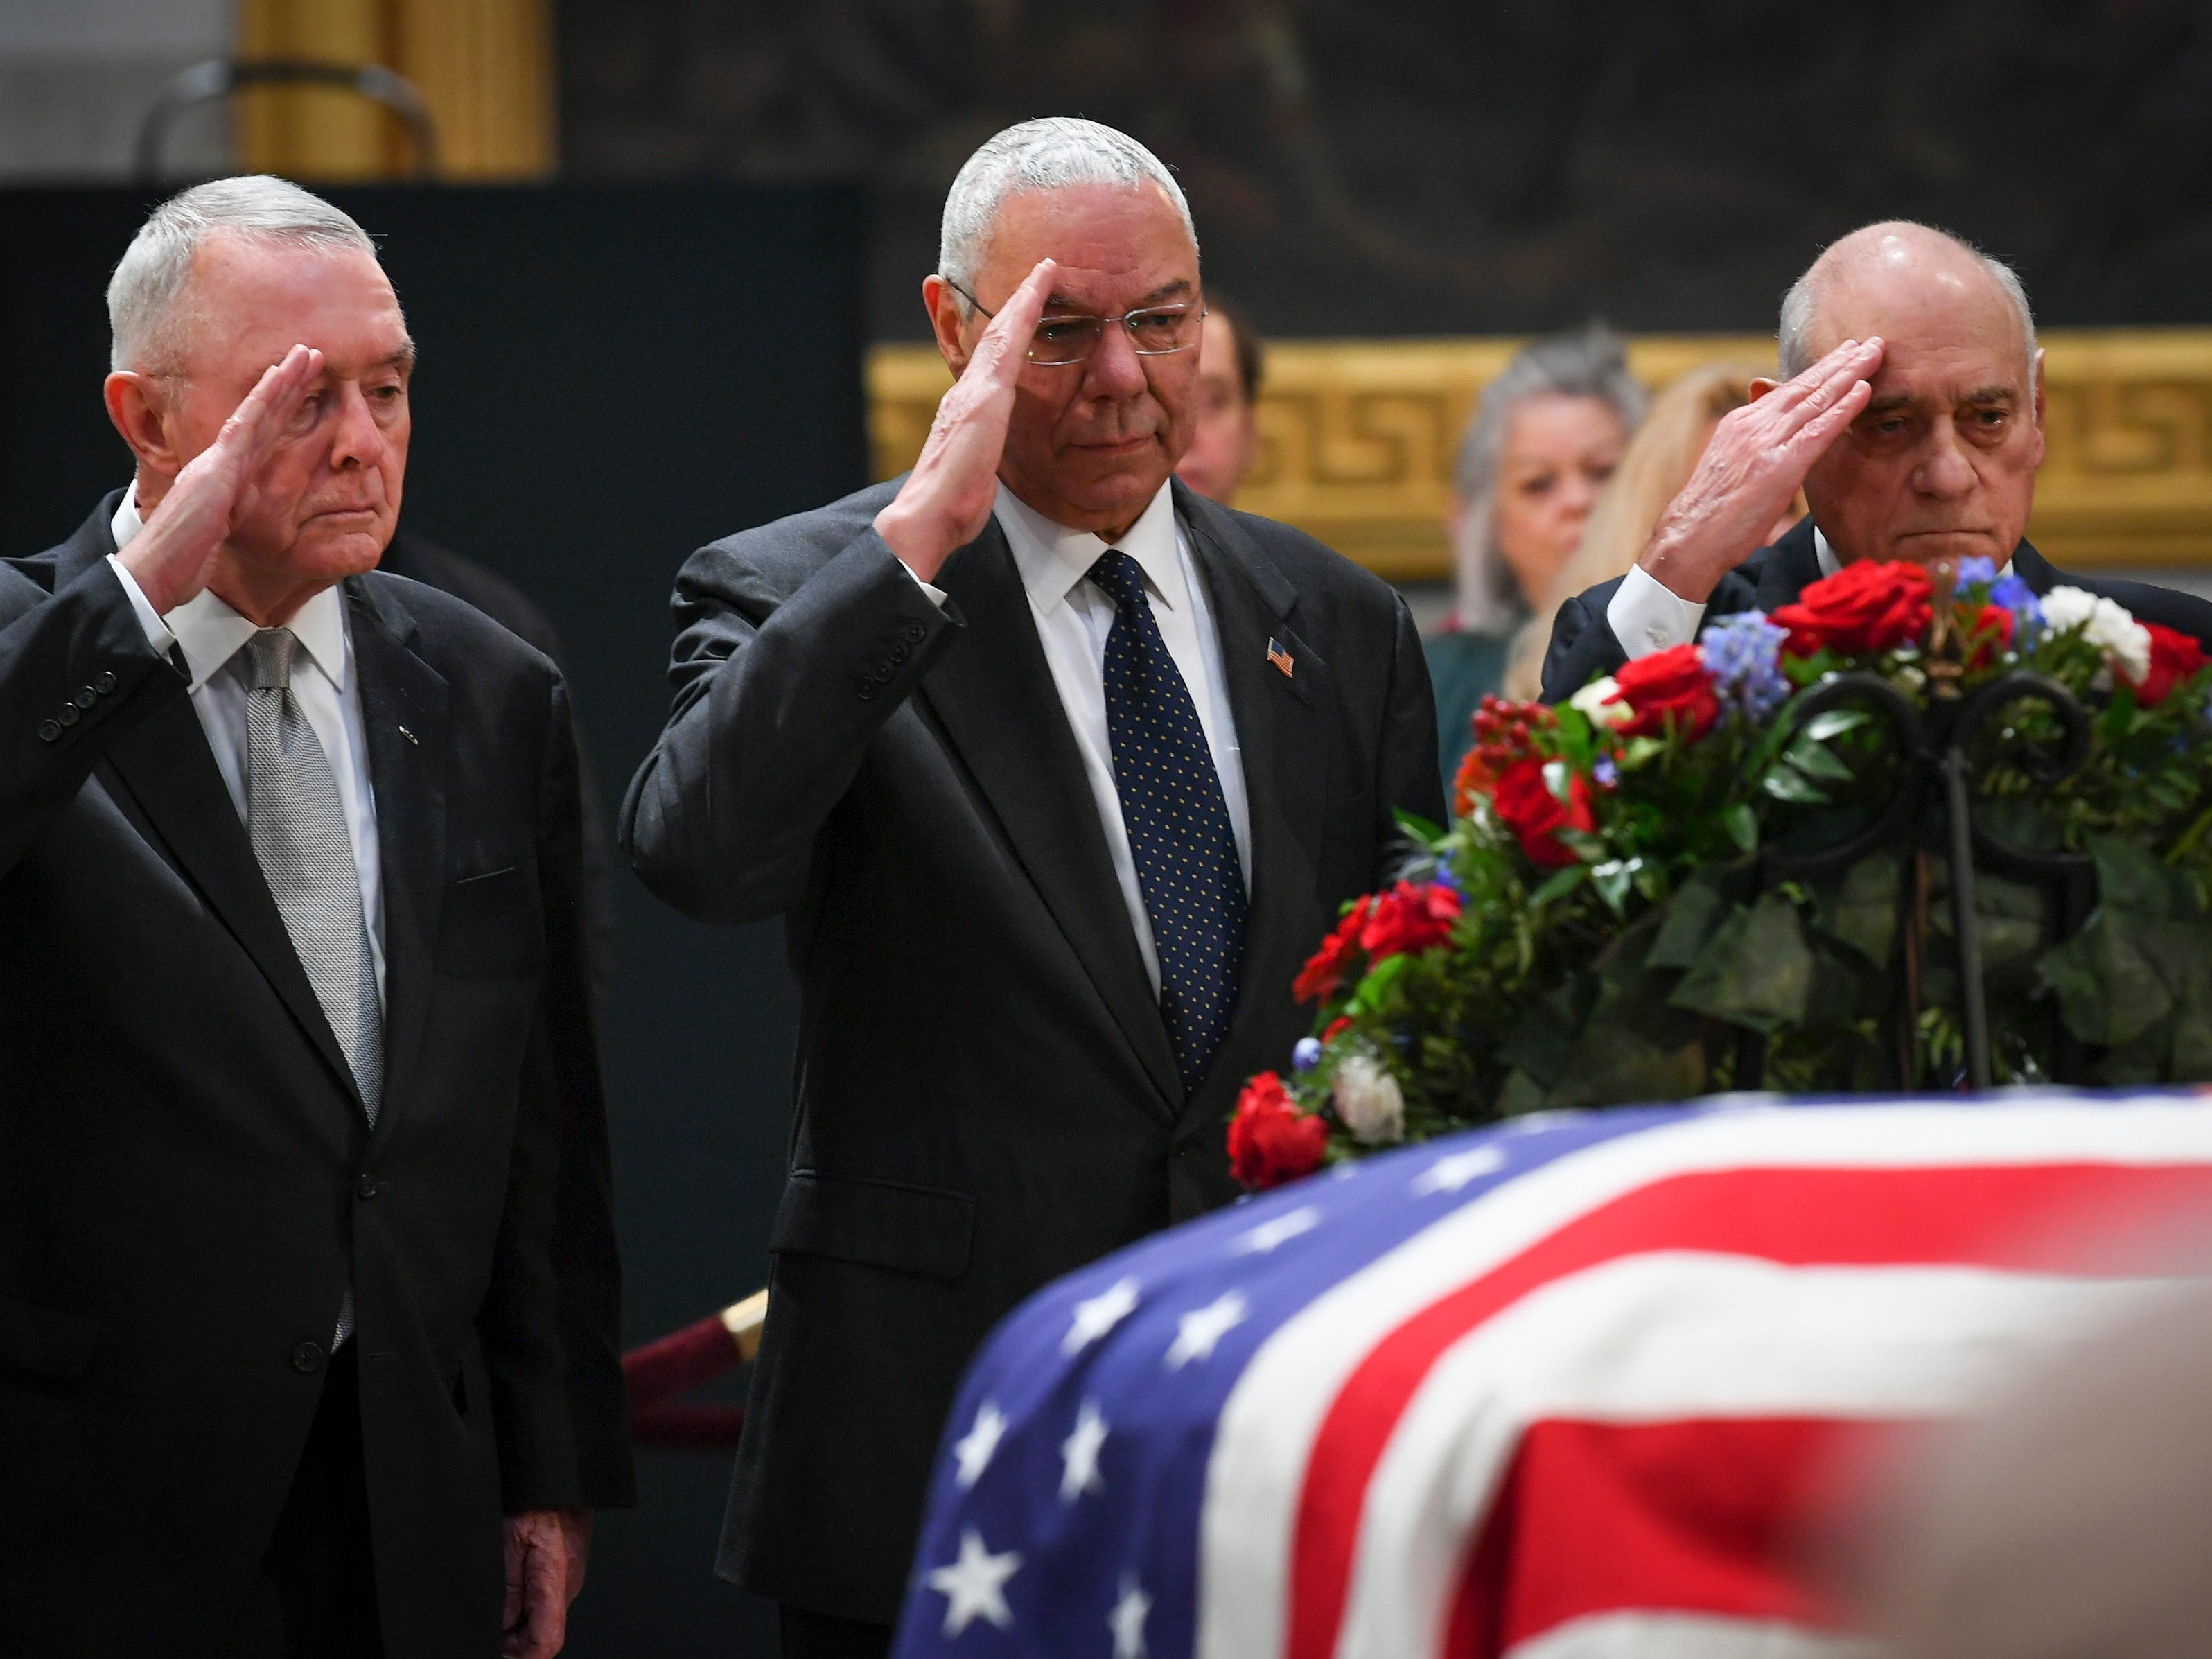 12/4/18 10:31:45 AM -- Washington, DC, U.S.A  -- Colin Powell, the 65th United States Secretary of State (2001-2005), who served under President George W. Bush, center, pays respect to President Bush as he lies in state at the U.S. Capitol Rotunda. --    Photo by Jack Gruber, USA TODAY staff ORG XMIT:  JG 137685 Arrival and Fune 12/4 (Via OlyDrop)